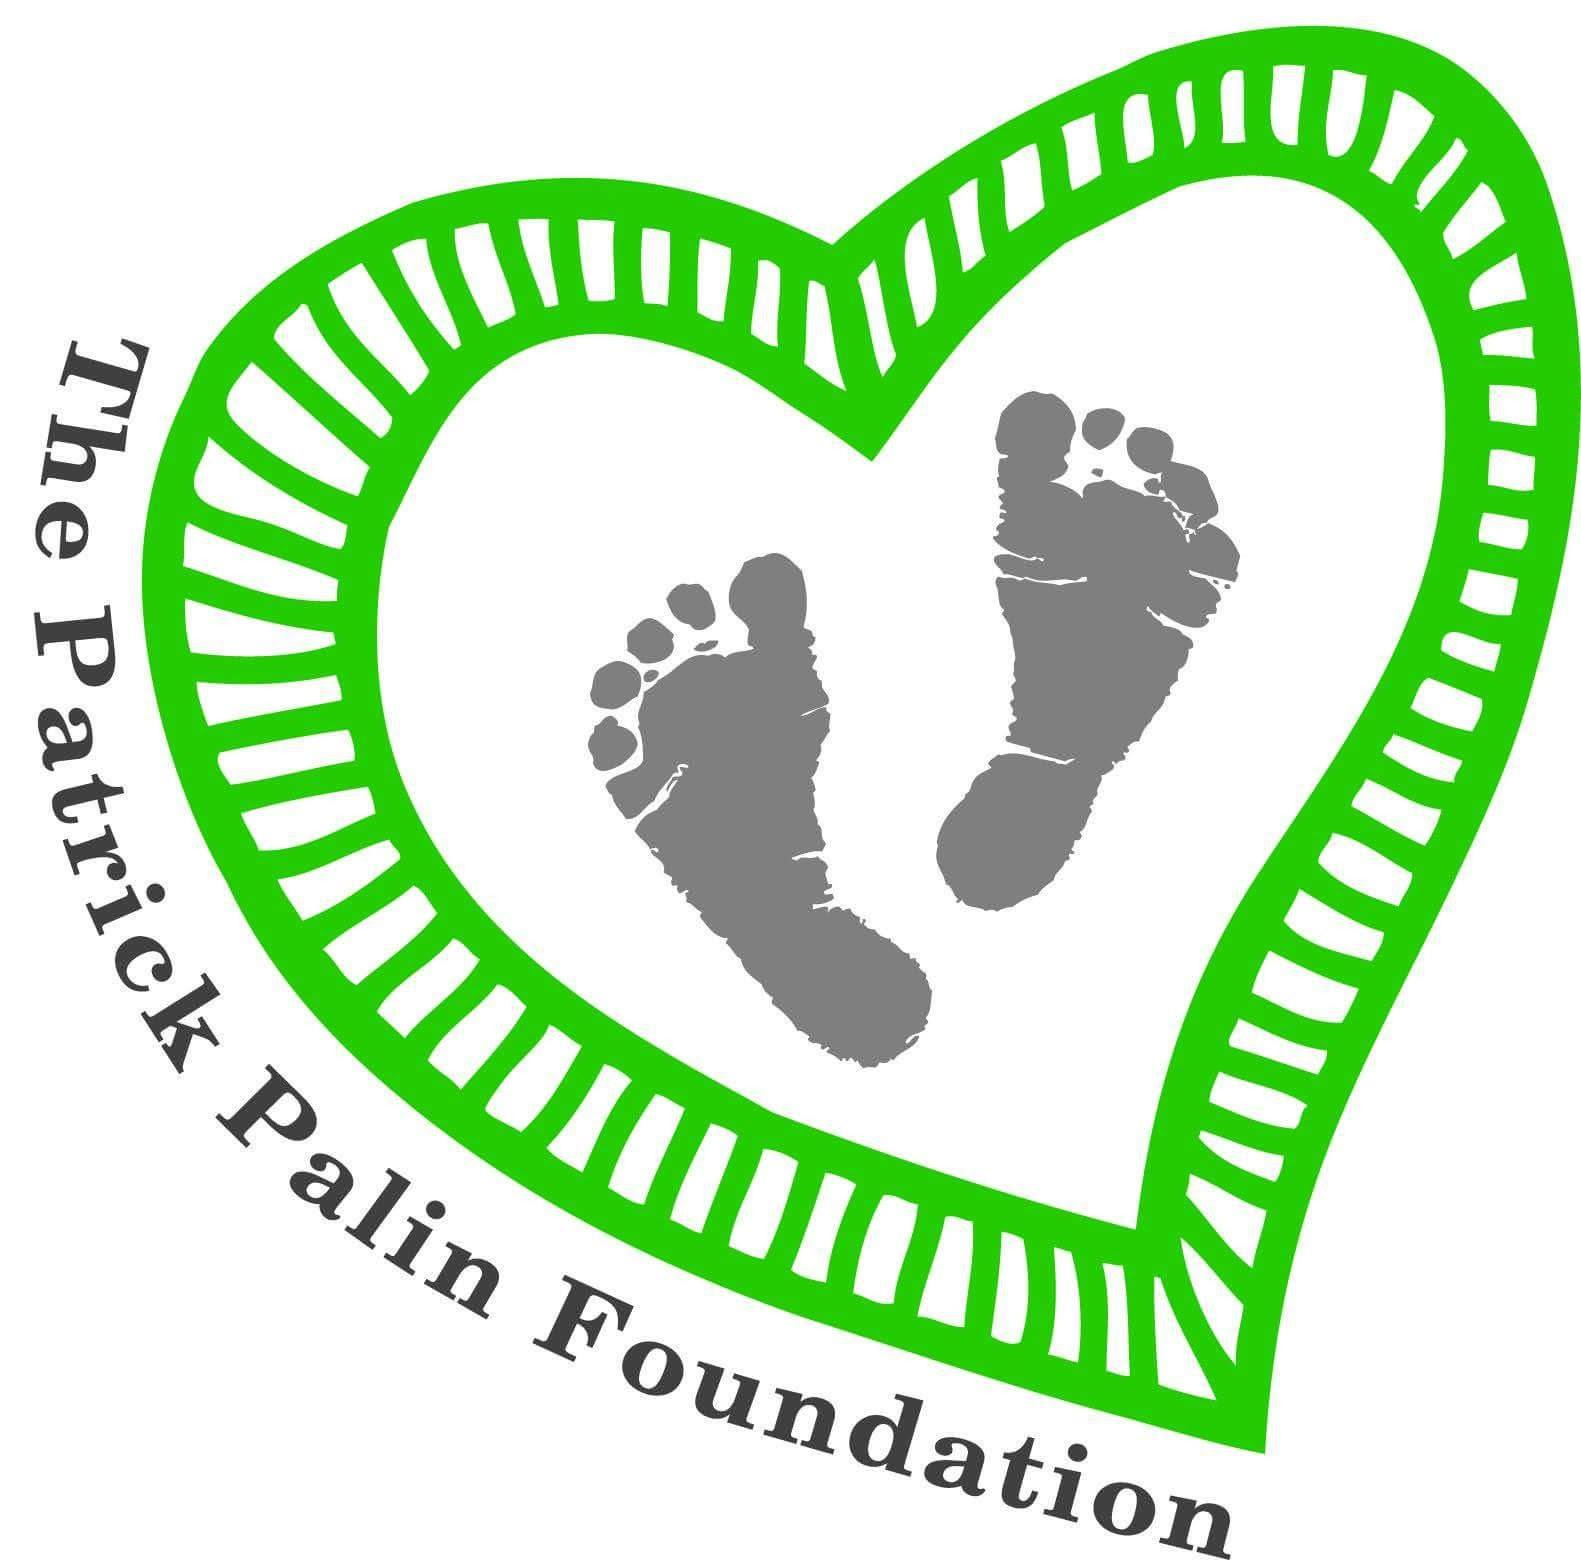 The Patrick Palin Foundation Inc